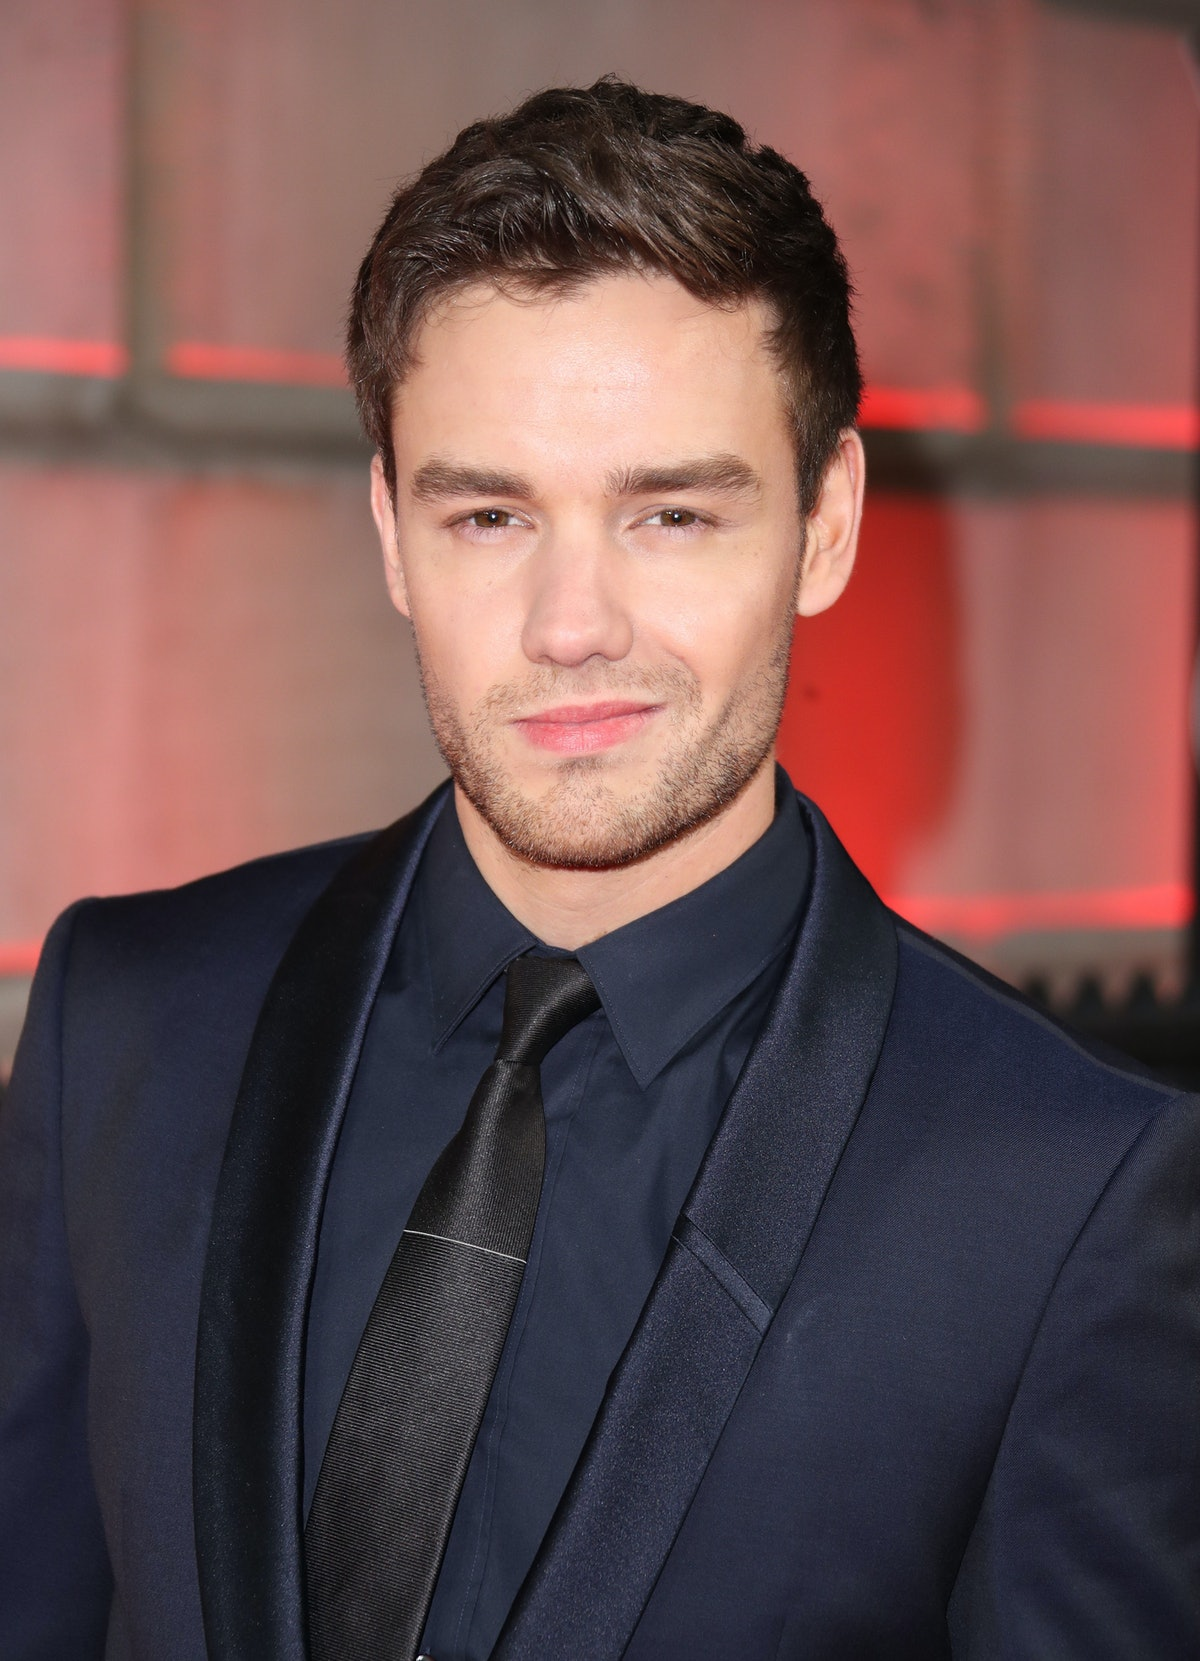 Liam Payne hinted at the possibility of a One Direction reunion after a phone call with Harry Styles.